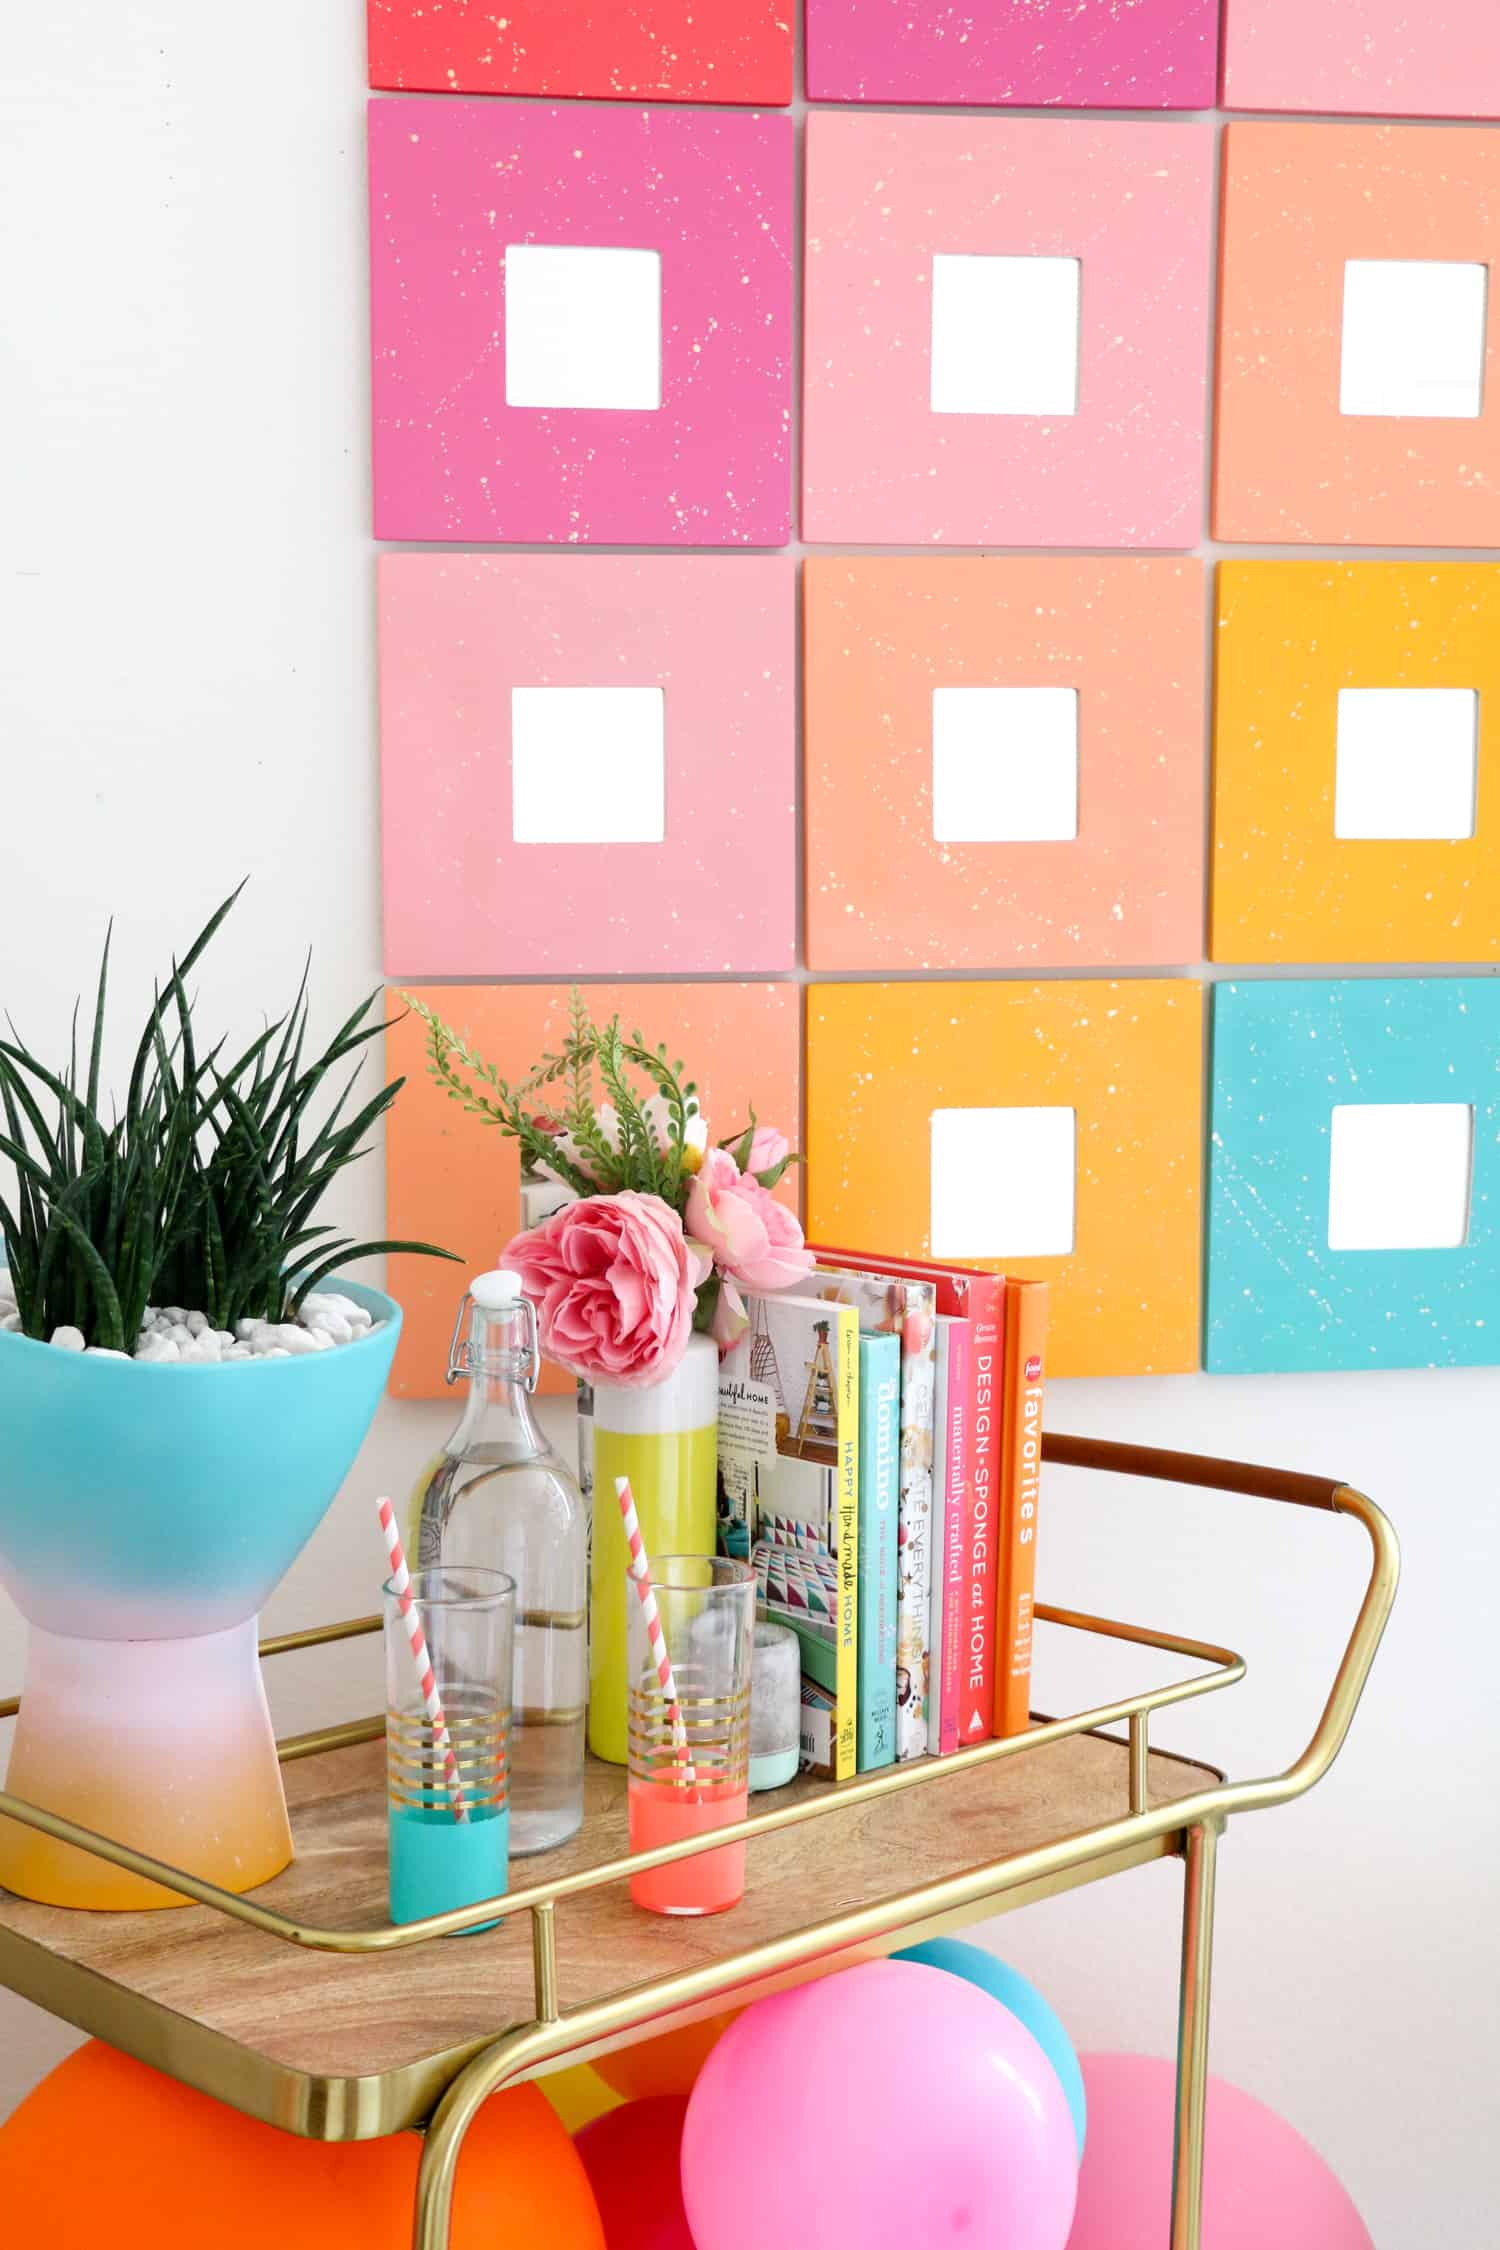 DIY-Splatter-Painted-Mirror-Wall-Art-Click-Through-for-Tutorial-_